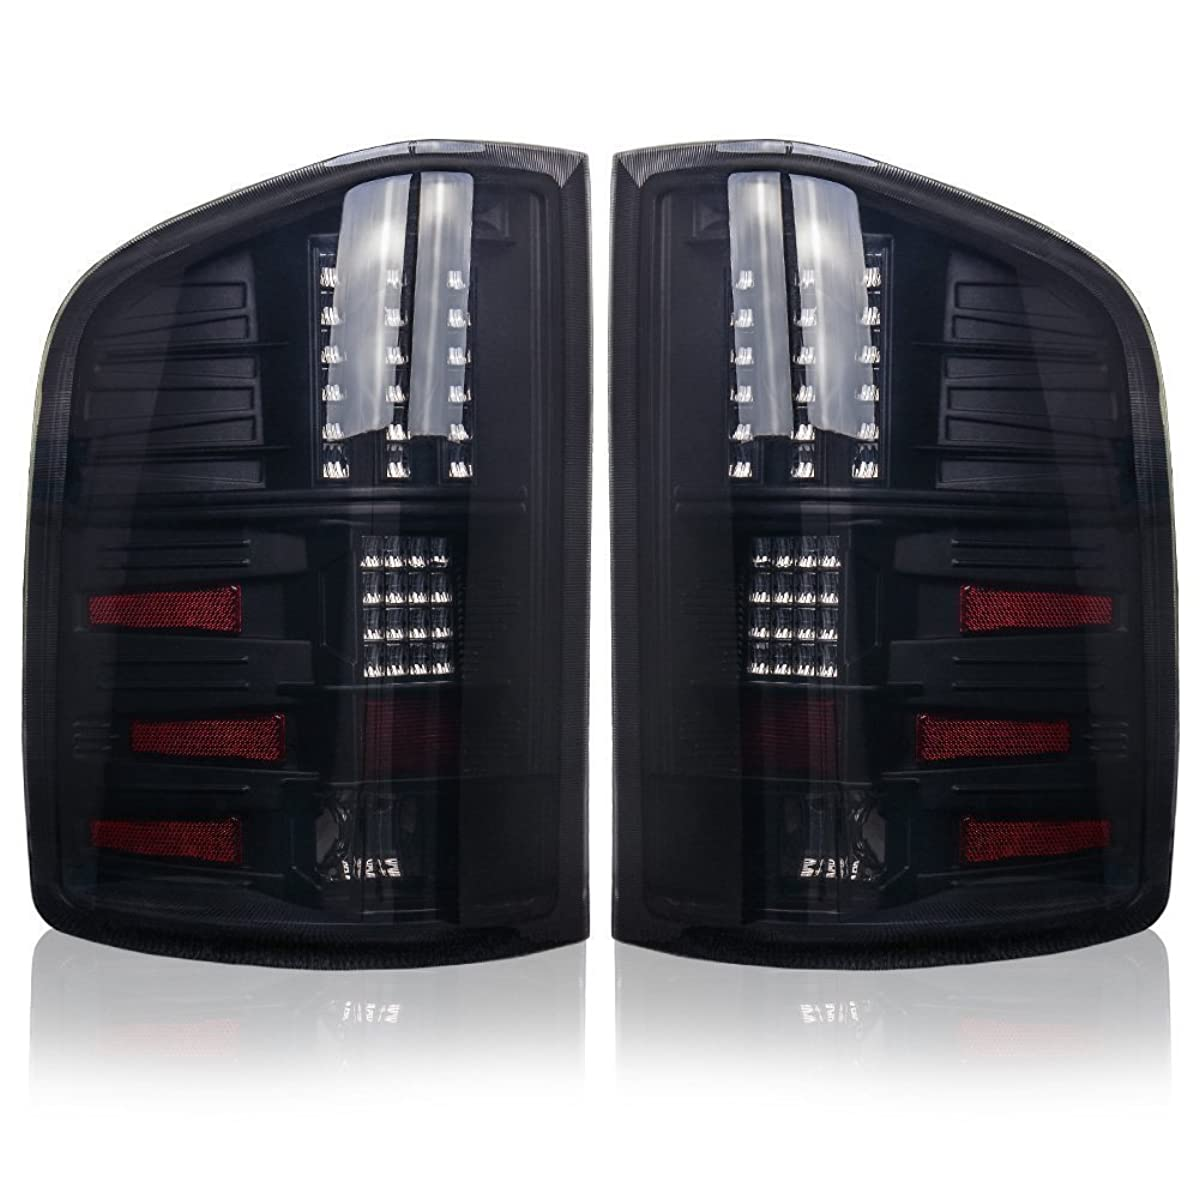 LED Taillights Tail Lamps for Chevy Silverado 1500 2008-2013 Silverado 2500 & 3500 2008-2014 (Fit 2007 New Body Style), for GMC Sierra 3500 HD 2007-2014 (Dual Rear Wheel ONLY) Black Smoke